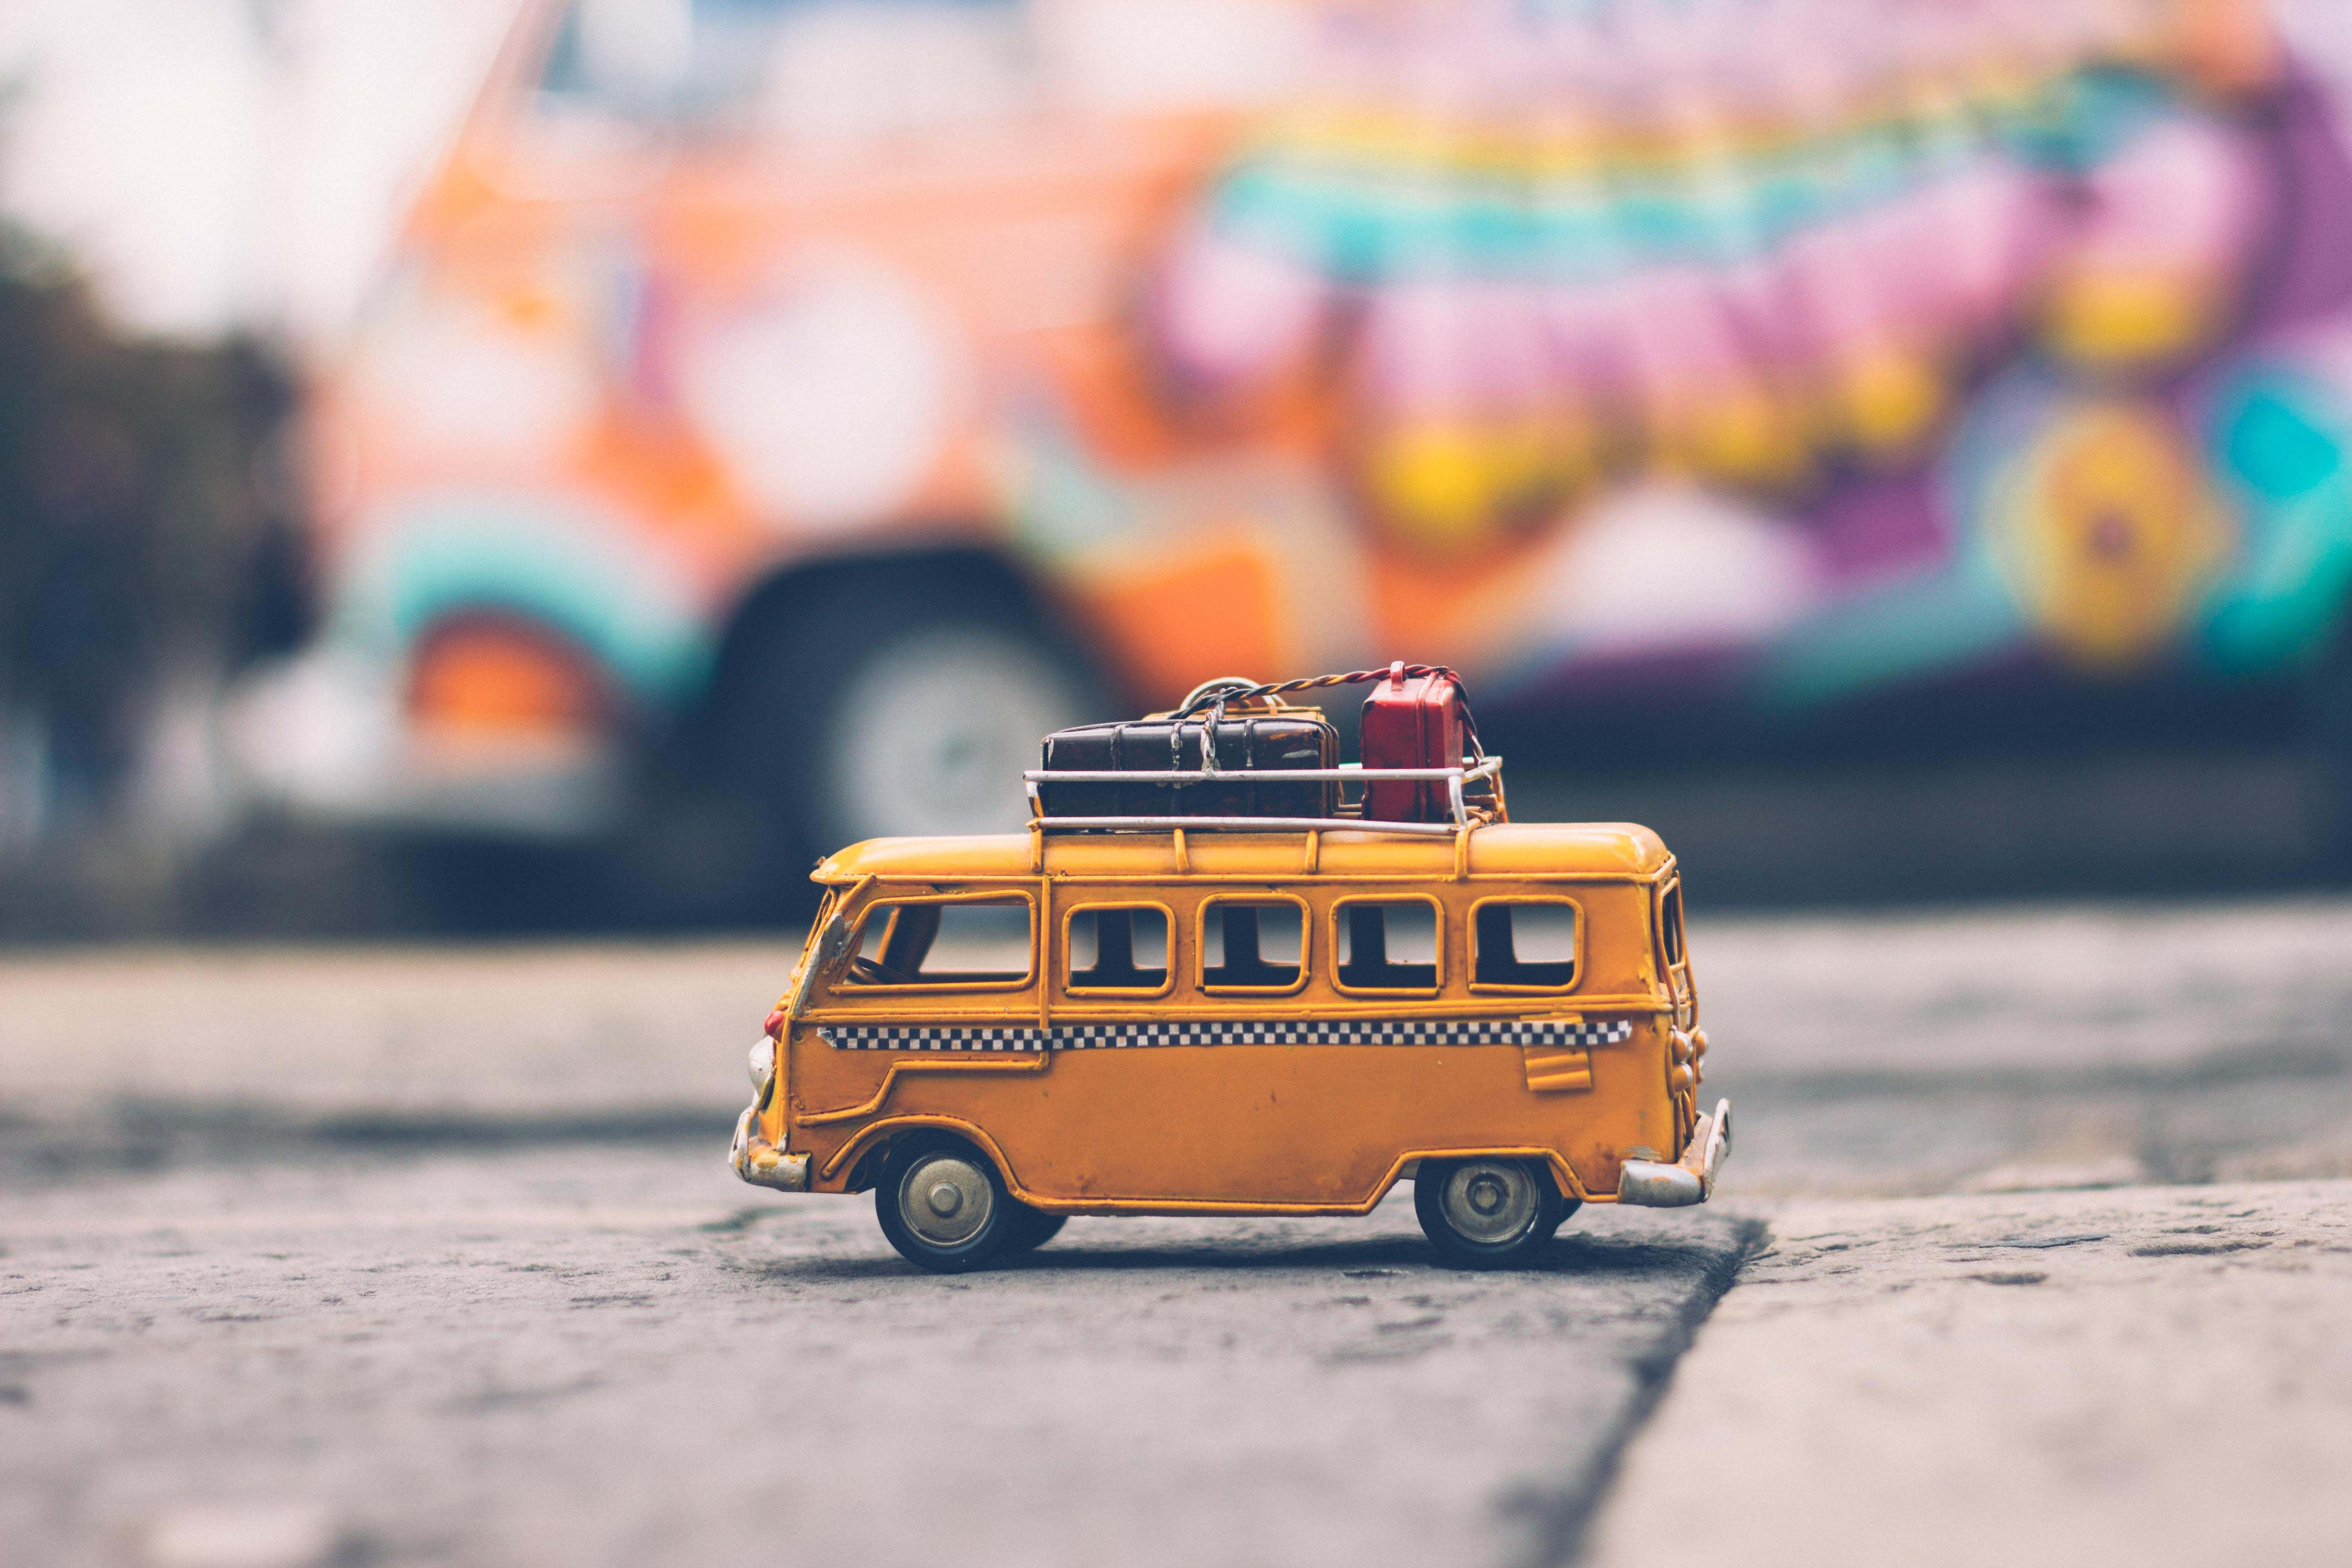 An image of a toy coach with pieces of toy luggage on strapped to the roof.